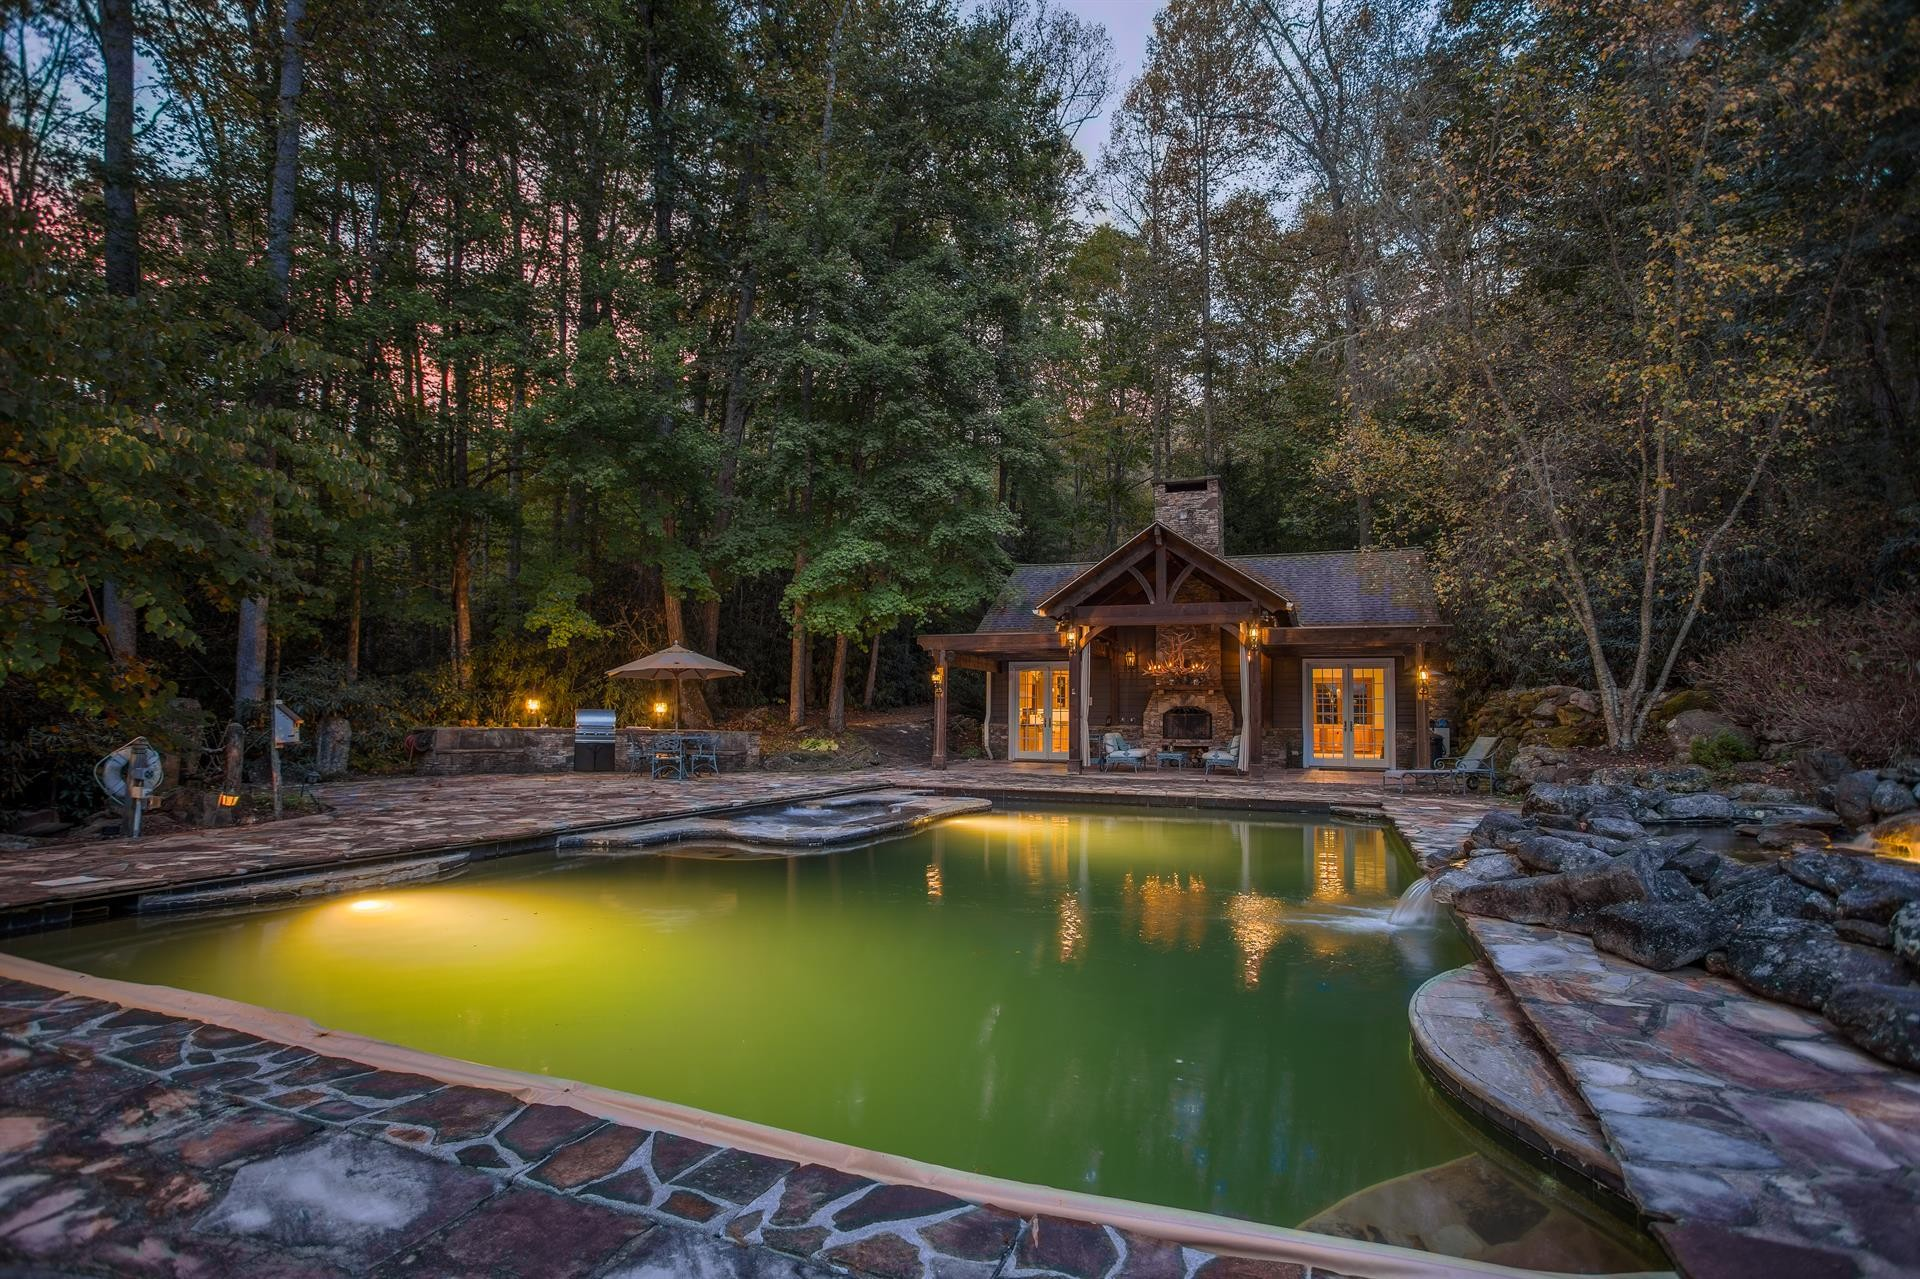 bespoke 29 acre estate a luxury estate for sale in franklin, north carolina property id cxn3562816 christie s international real estate